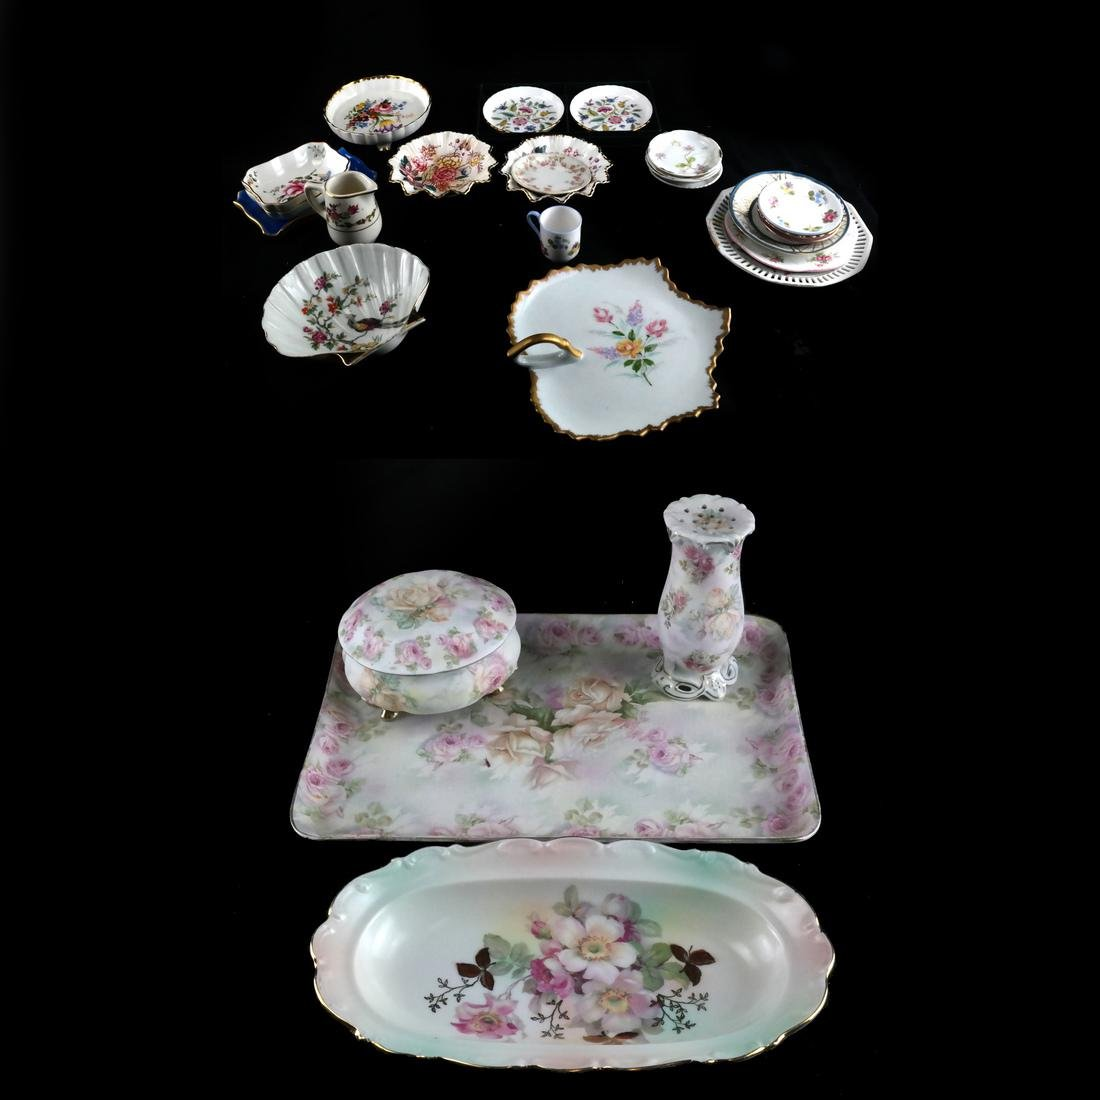 Mixed Group of Porcelain, Decorated Objects